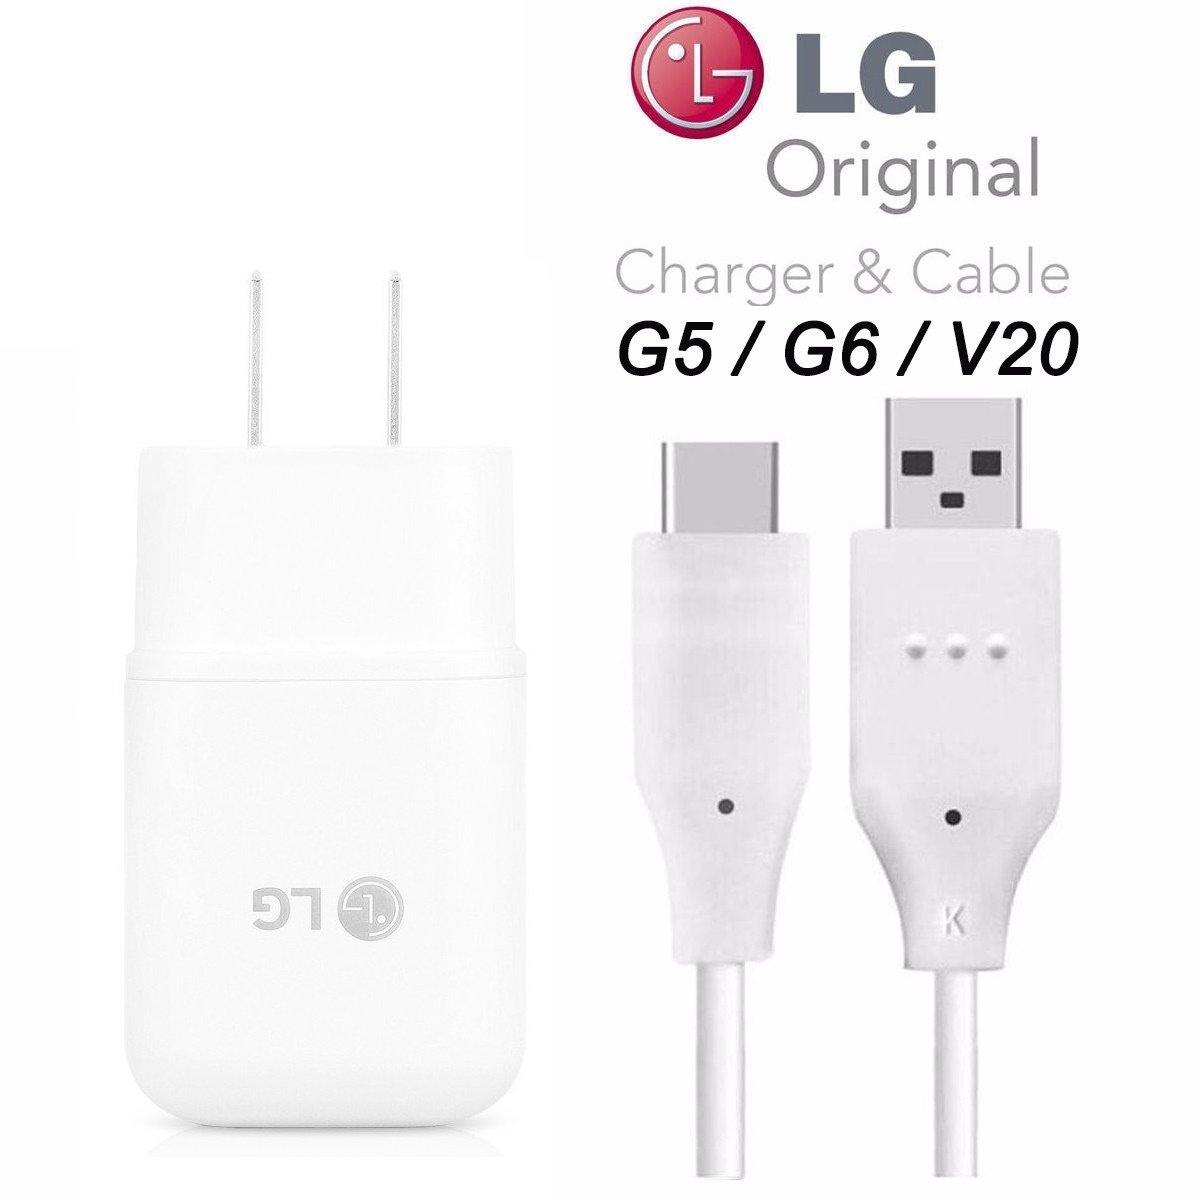 Genuine LG Quick Wall Charger + Type-C USB-C Cable for LG G5 / G6 / V20 / V30 / G7 - 18W QuickCharge 3.0 Certified - 100% Original - Bulk Packaging